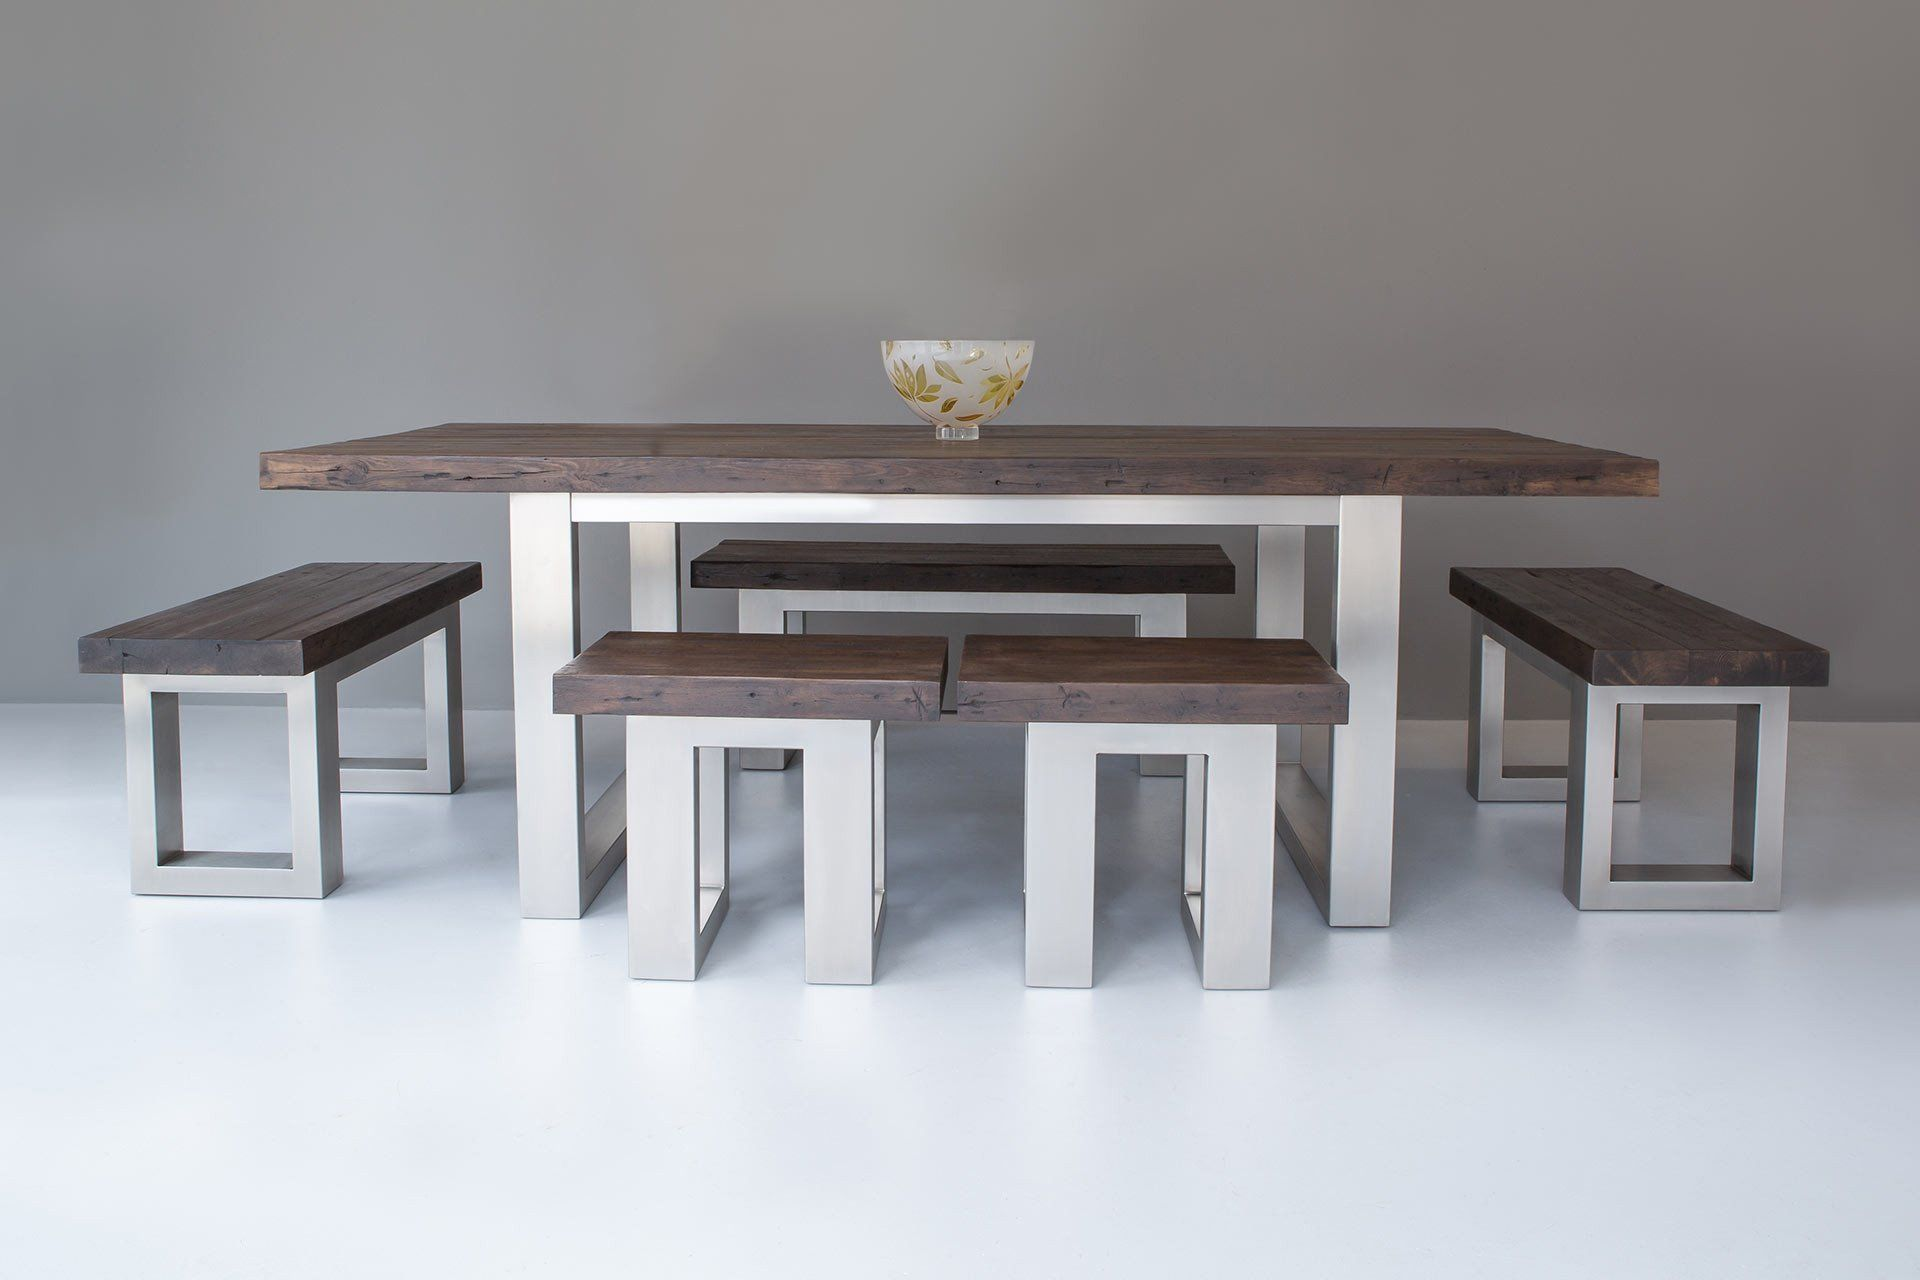 Cavendish Dining Table Long Overhang Hamira Benzeri Firma Urunleri In 2019 Dining Table Table Wooden Dining Tables